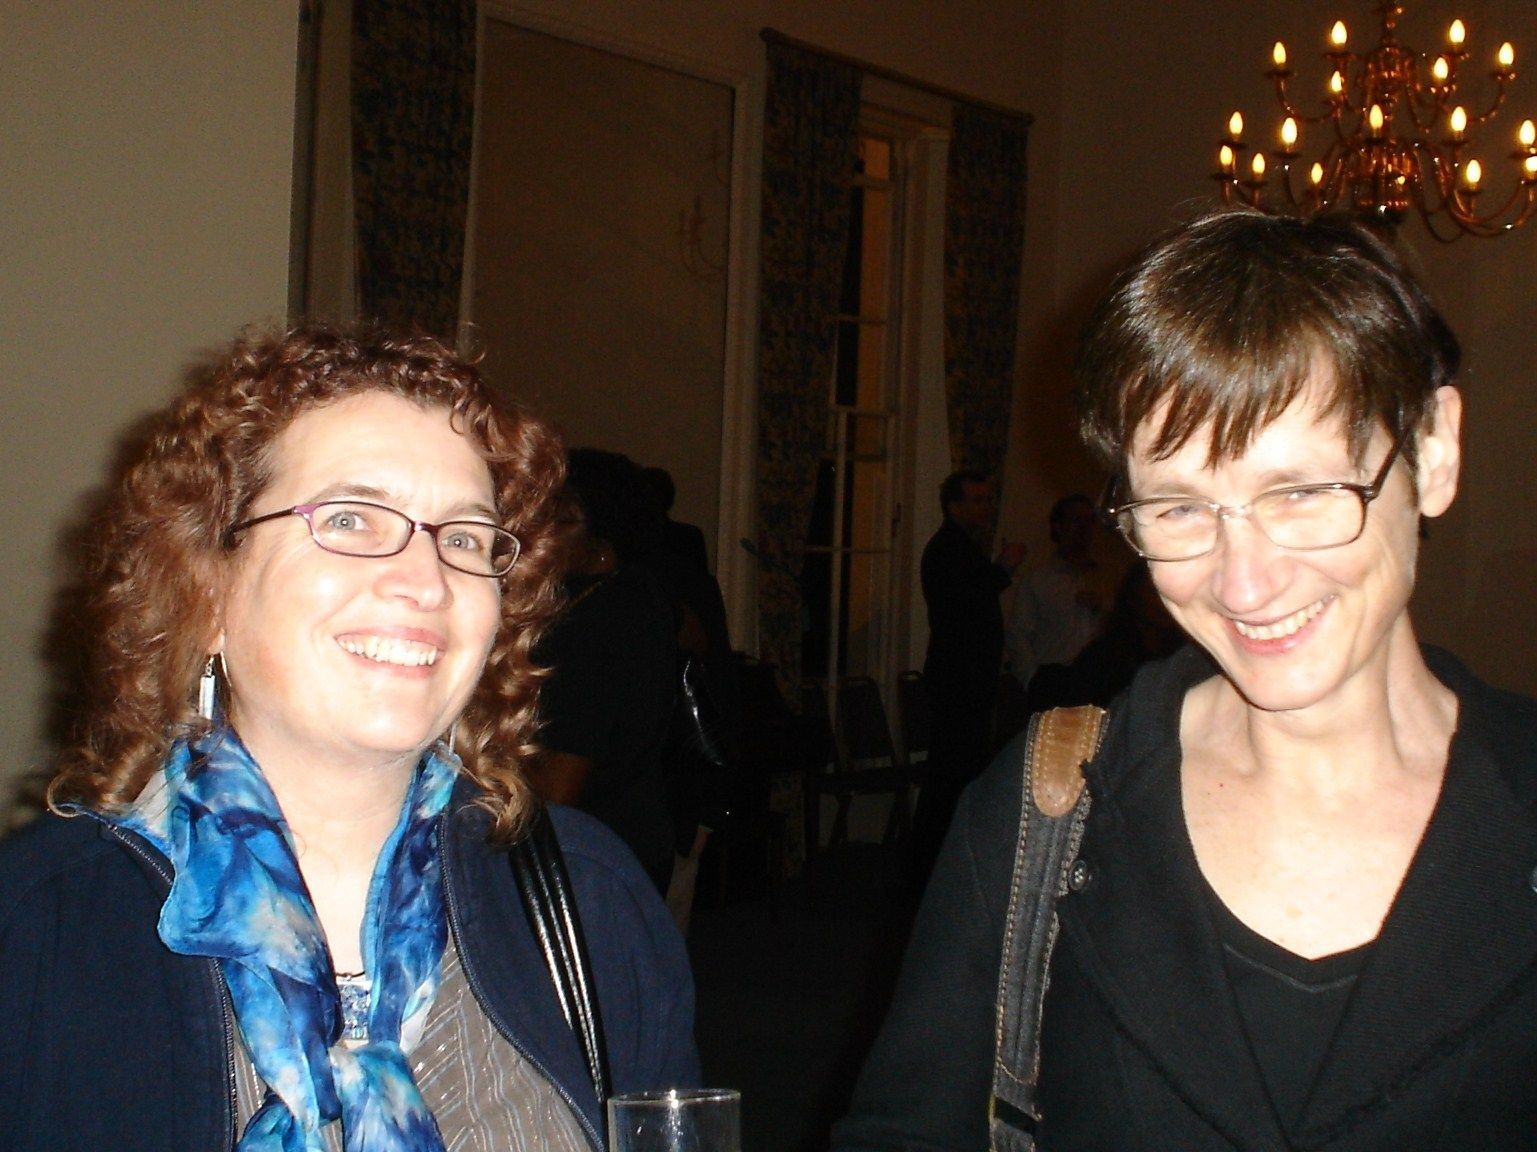 Maxine with Karen at the official launch of The Girl with the Dragon Tattoo, 2008